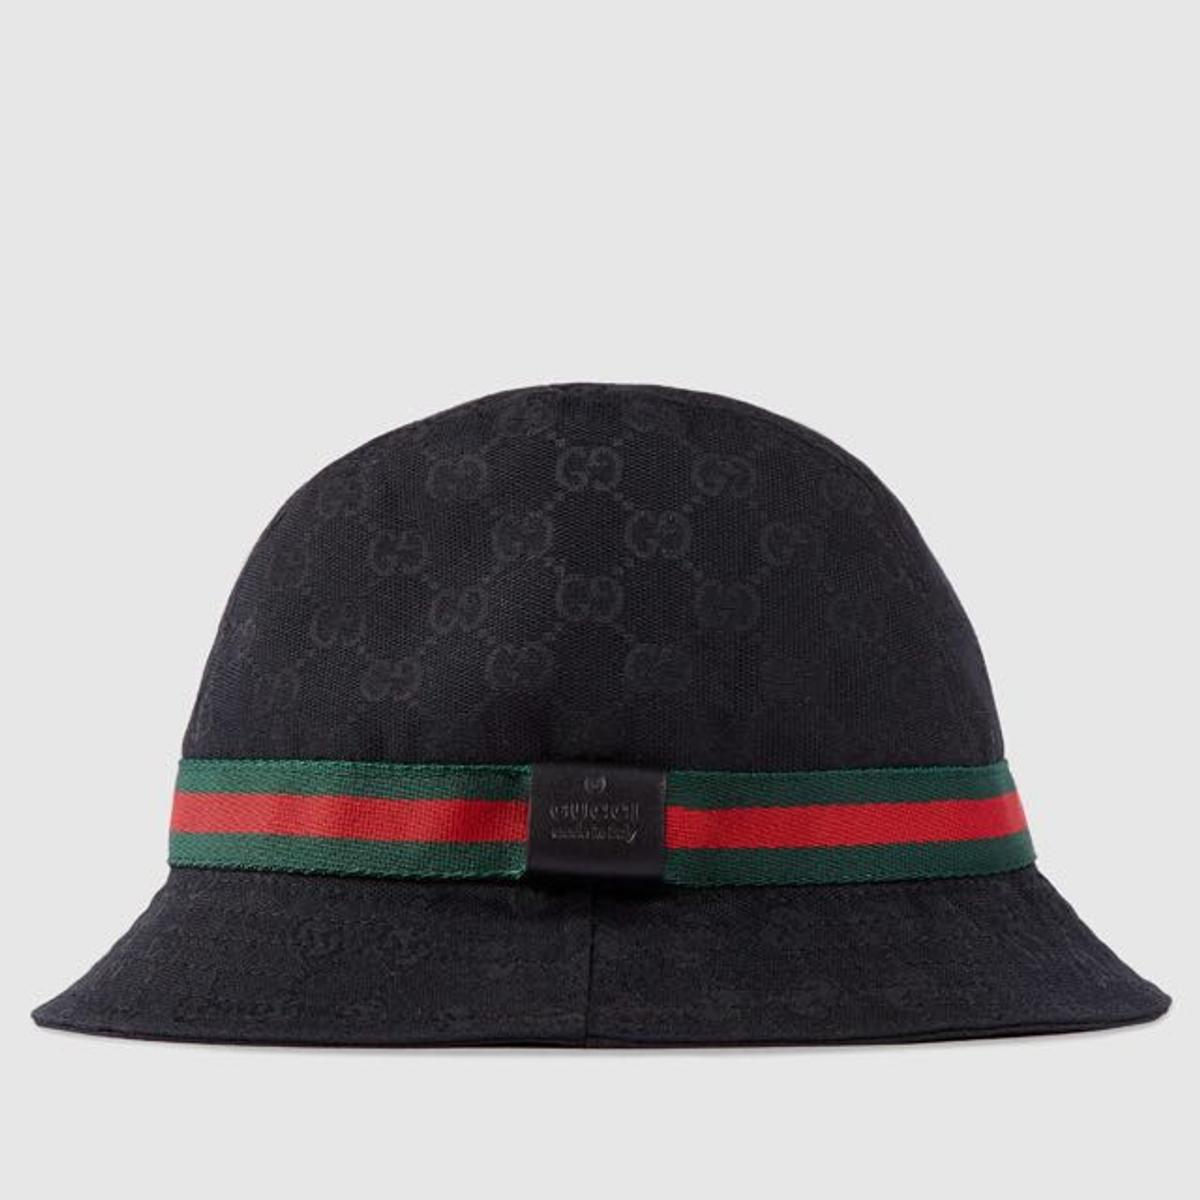 286399f4d gucci bucket hat (authentic)